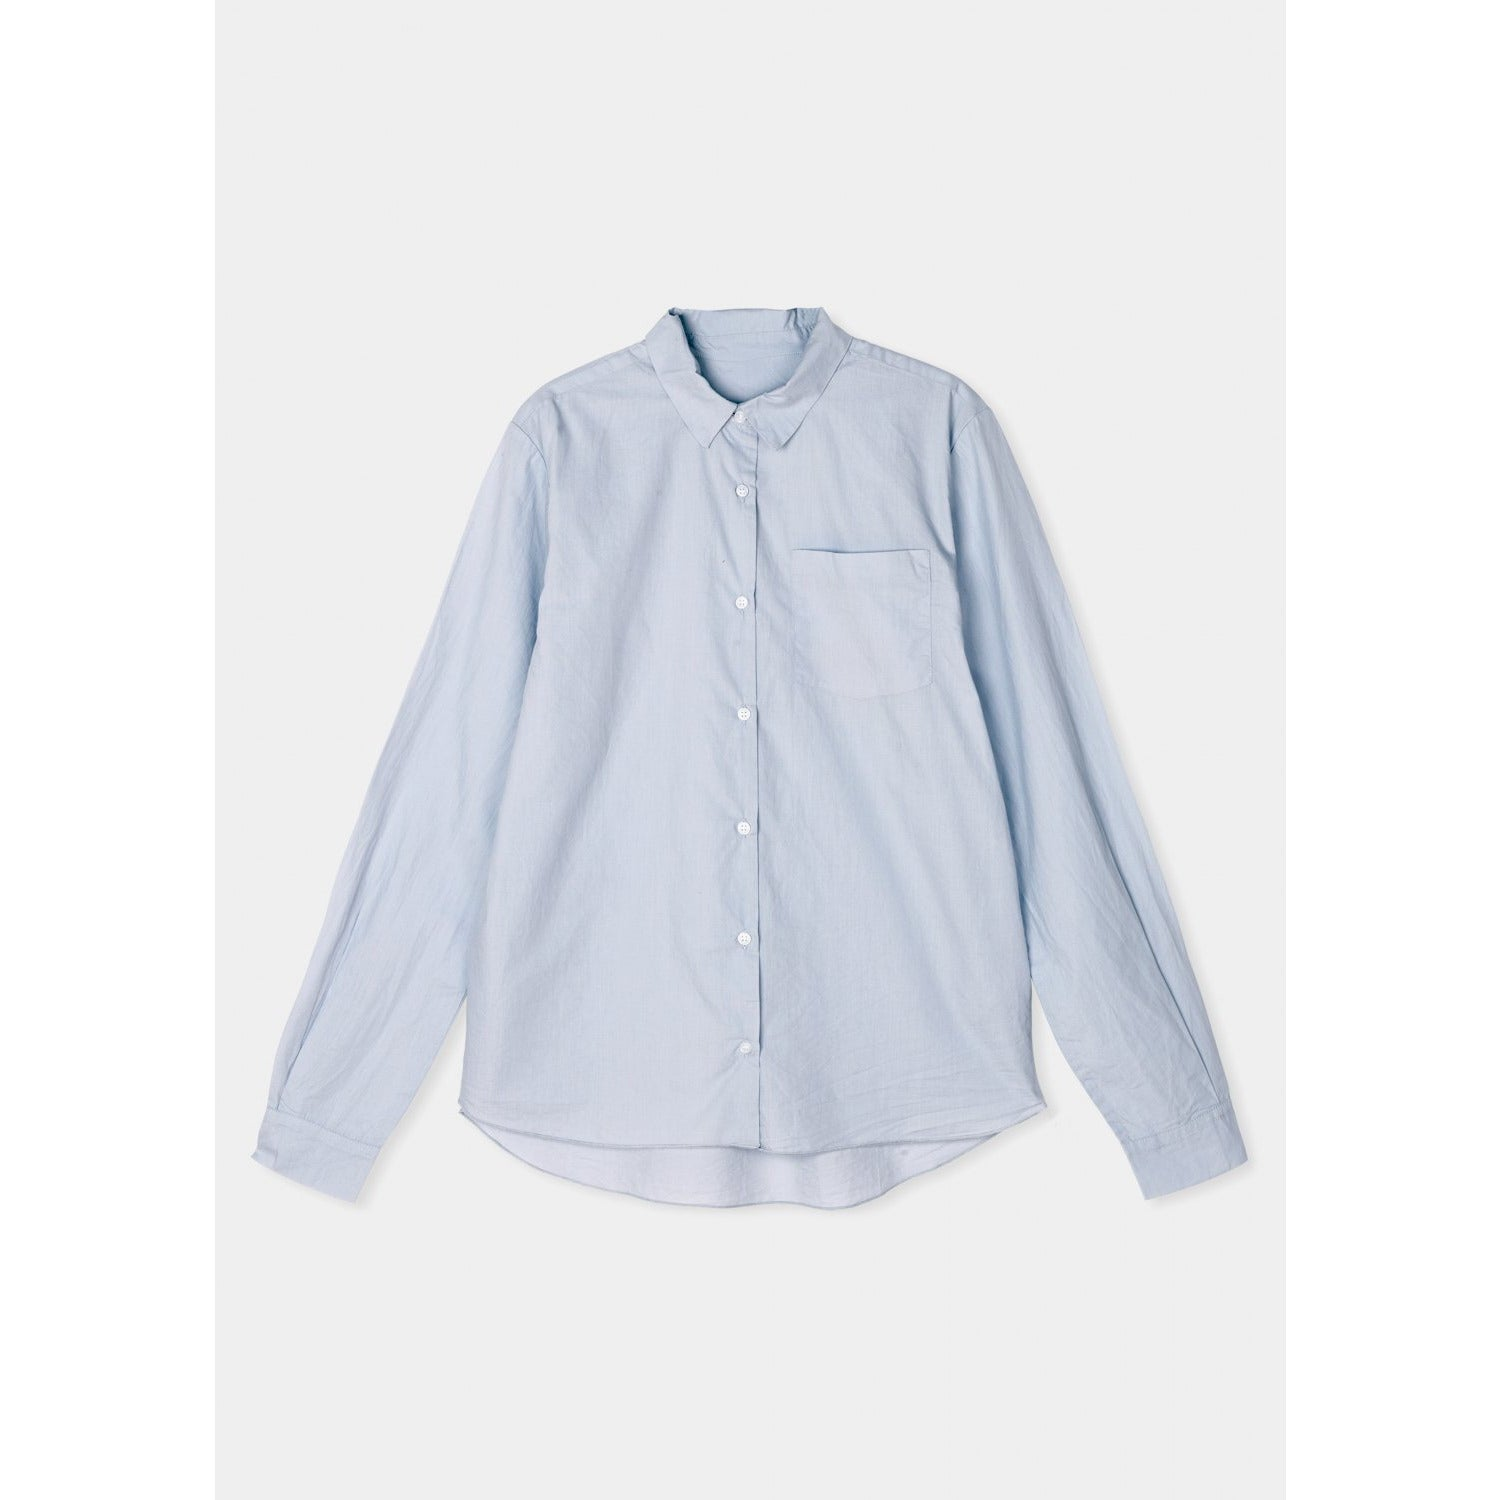 light blue colored organic cotton long sleeve button down by designer aiayu